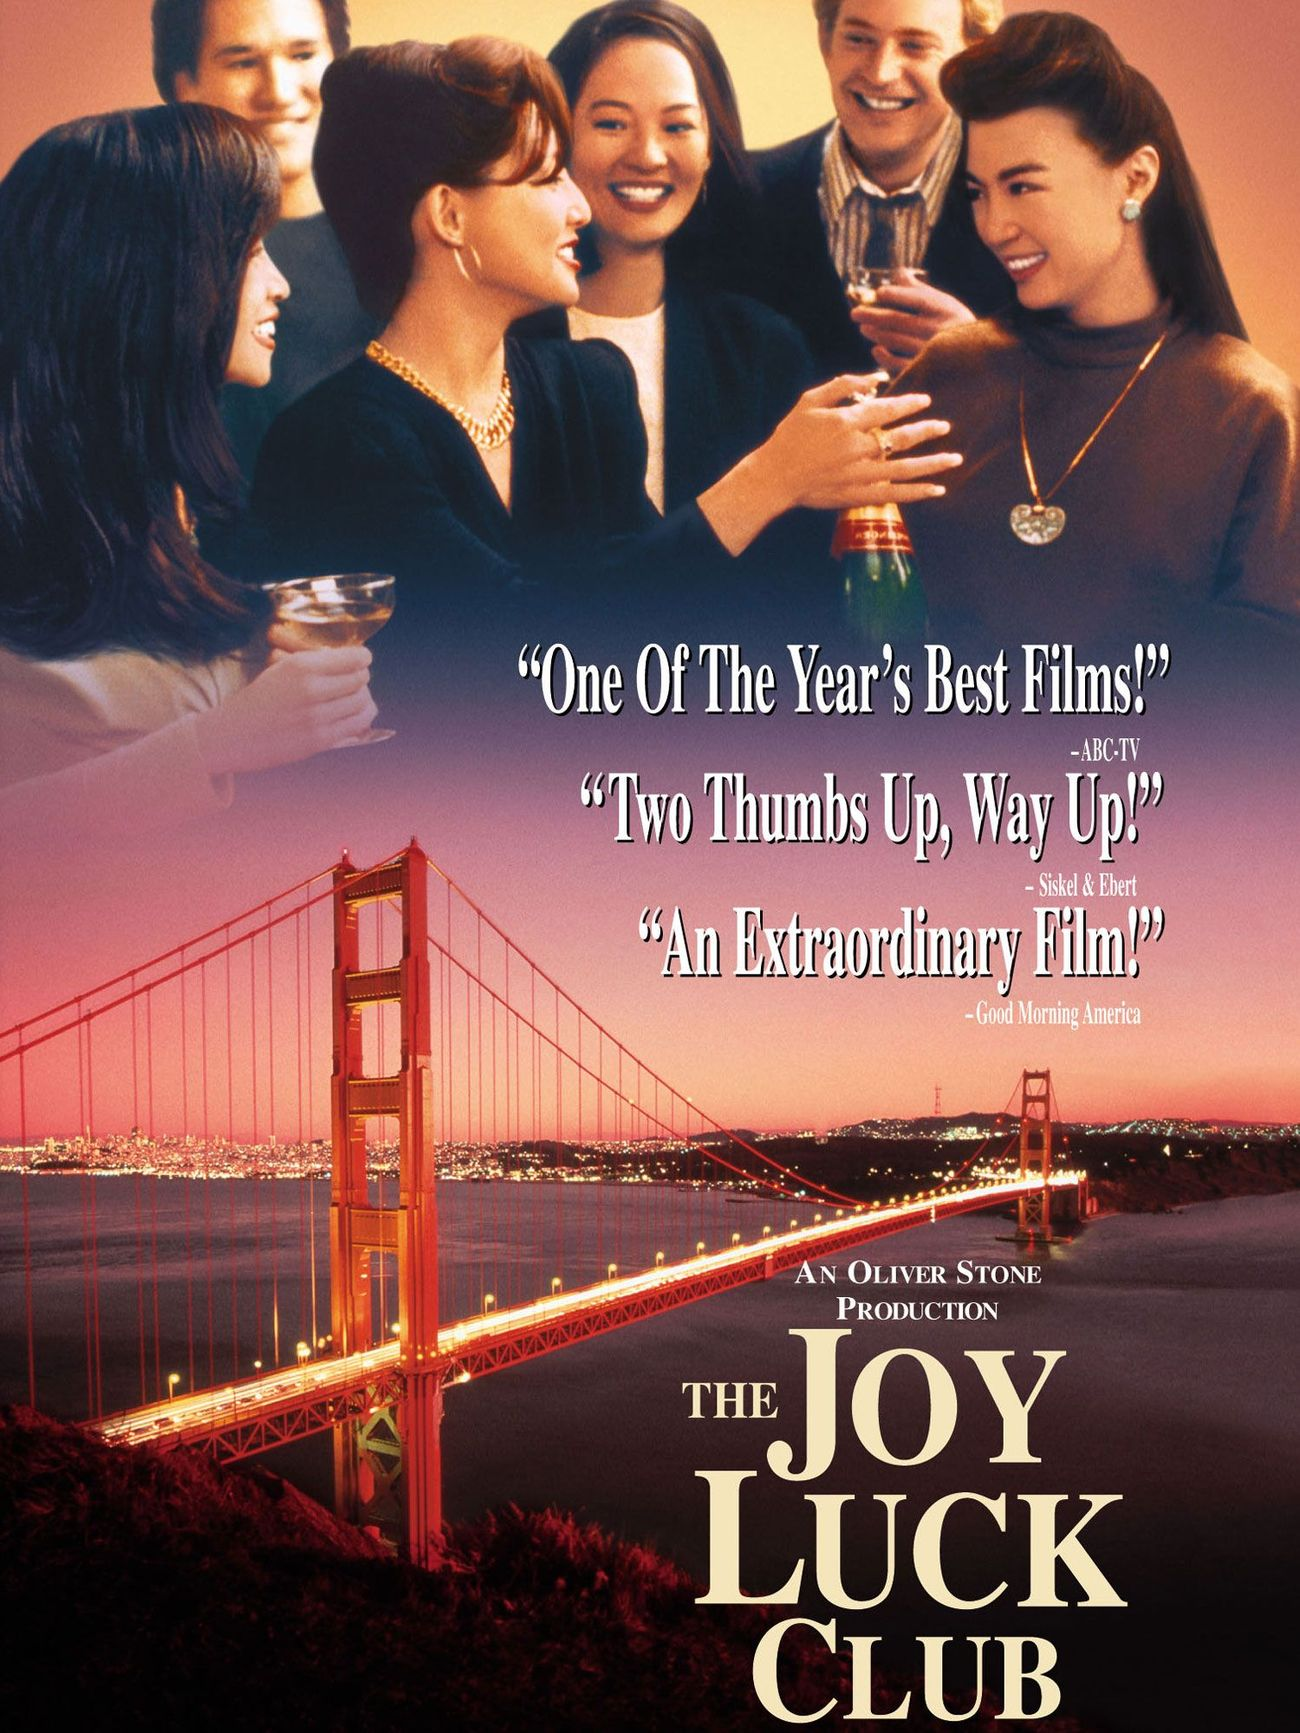 The Joy Luck Club Multicultural Movie